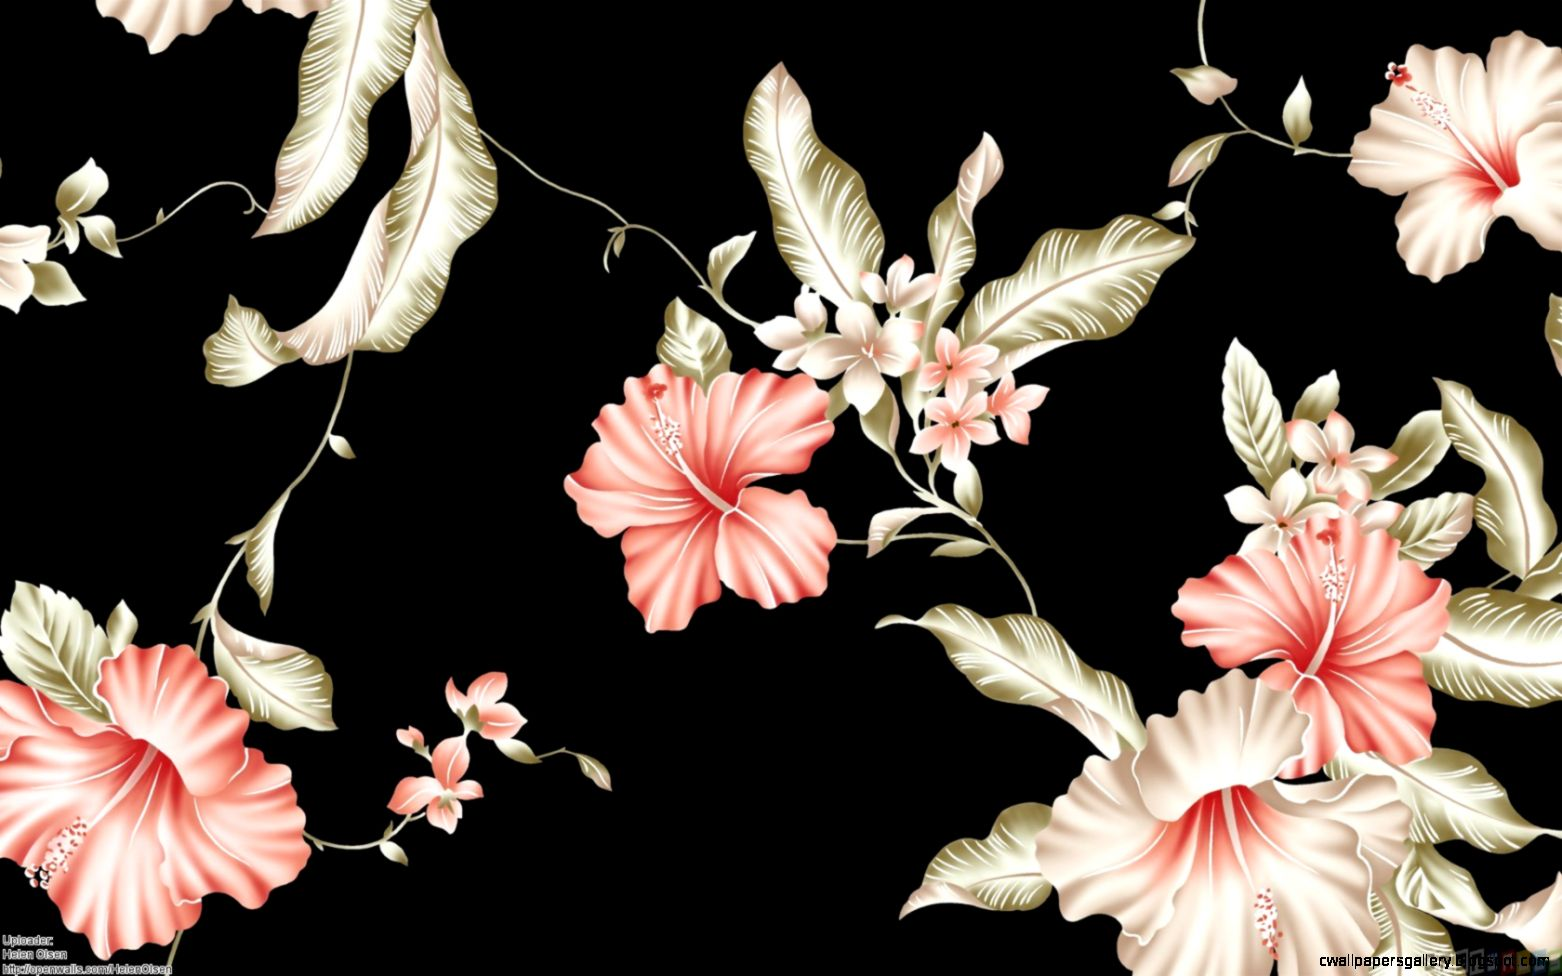 Pink flowers on a black background wallpaper 22015   Open Walls